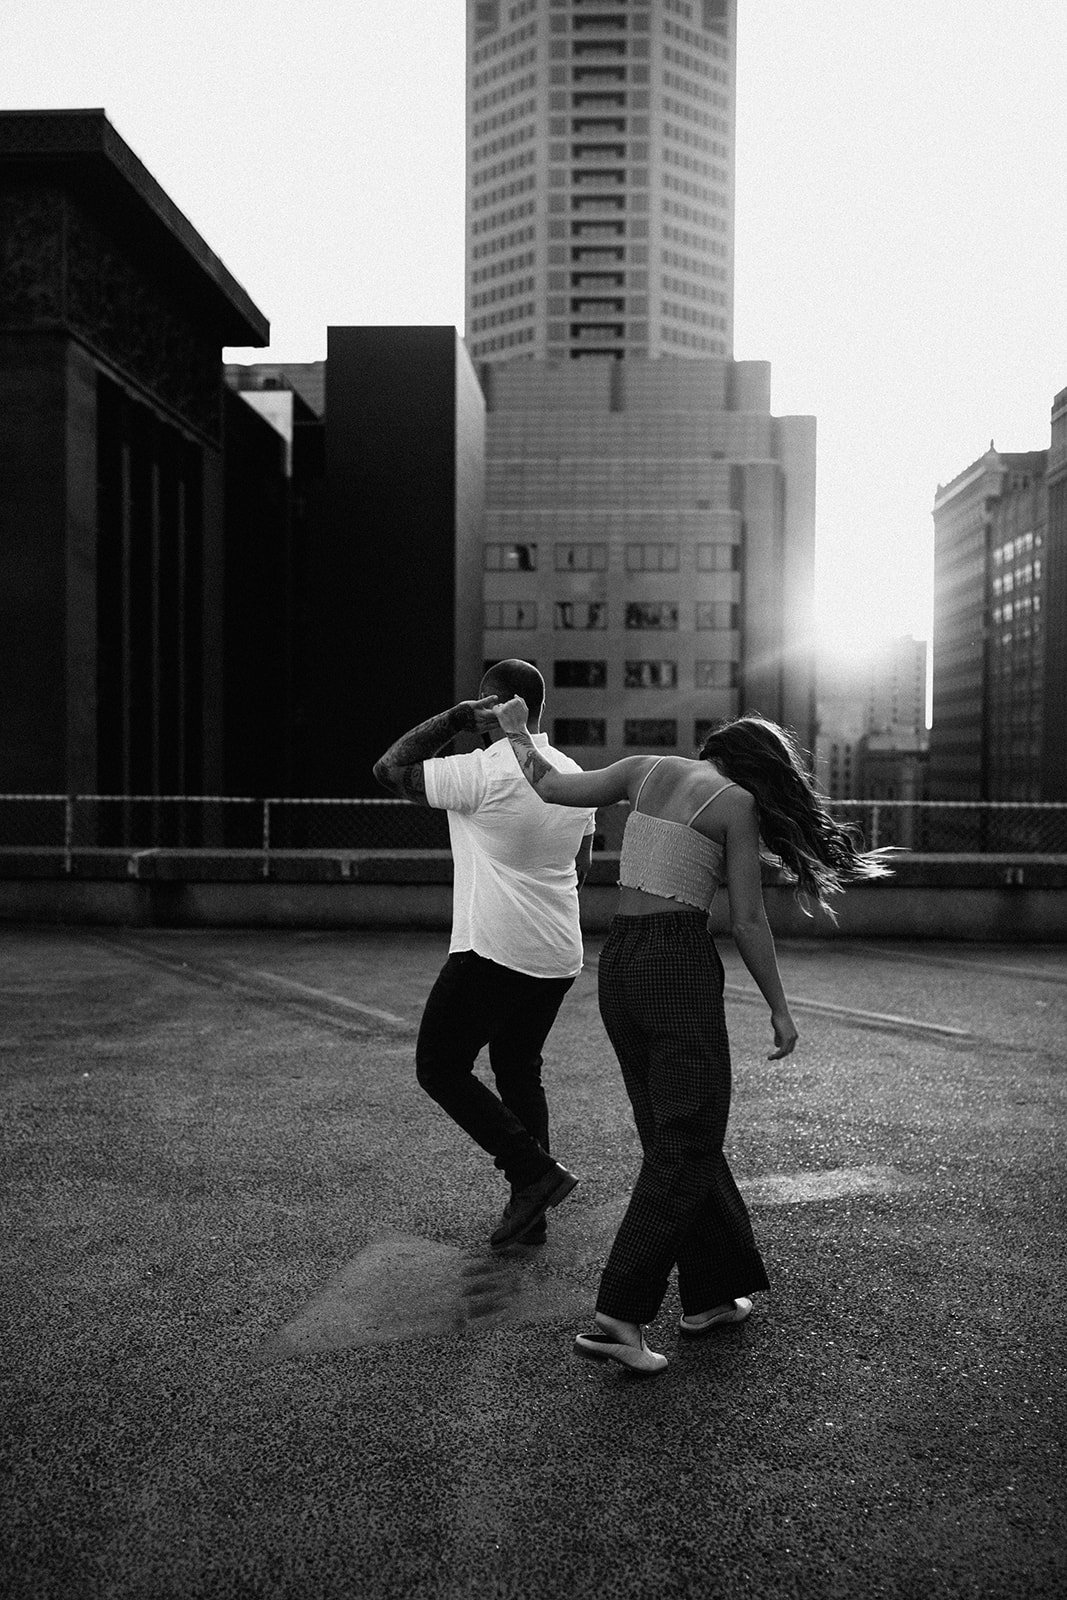 A black and white photo of a couple skateboarding on a rooftop.